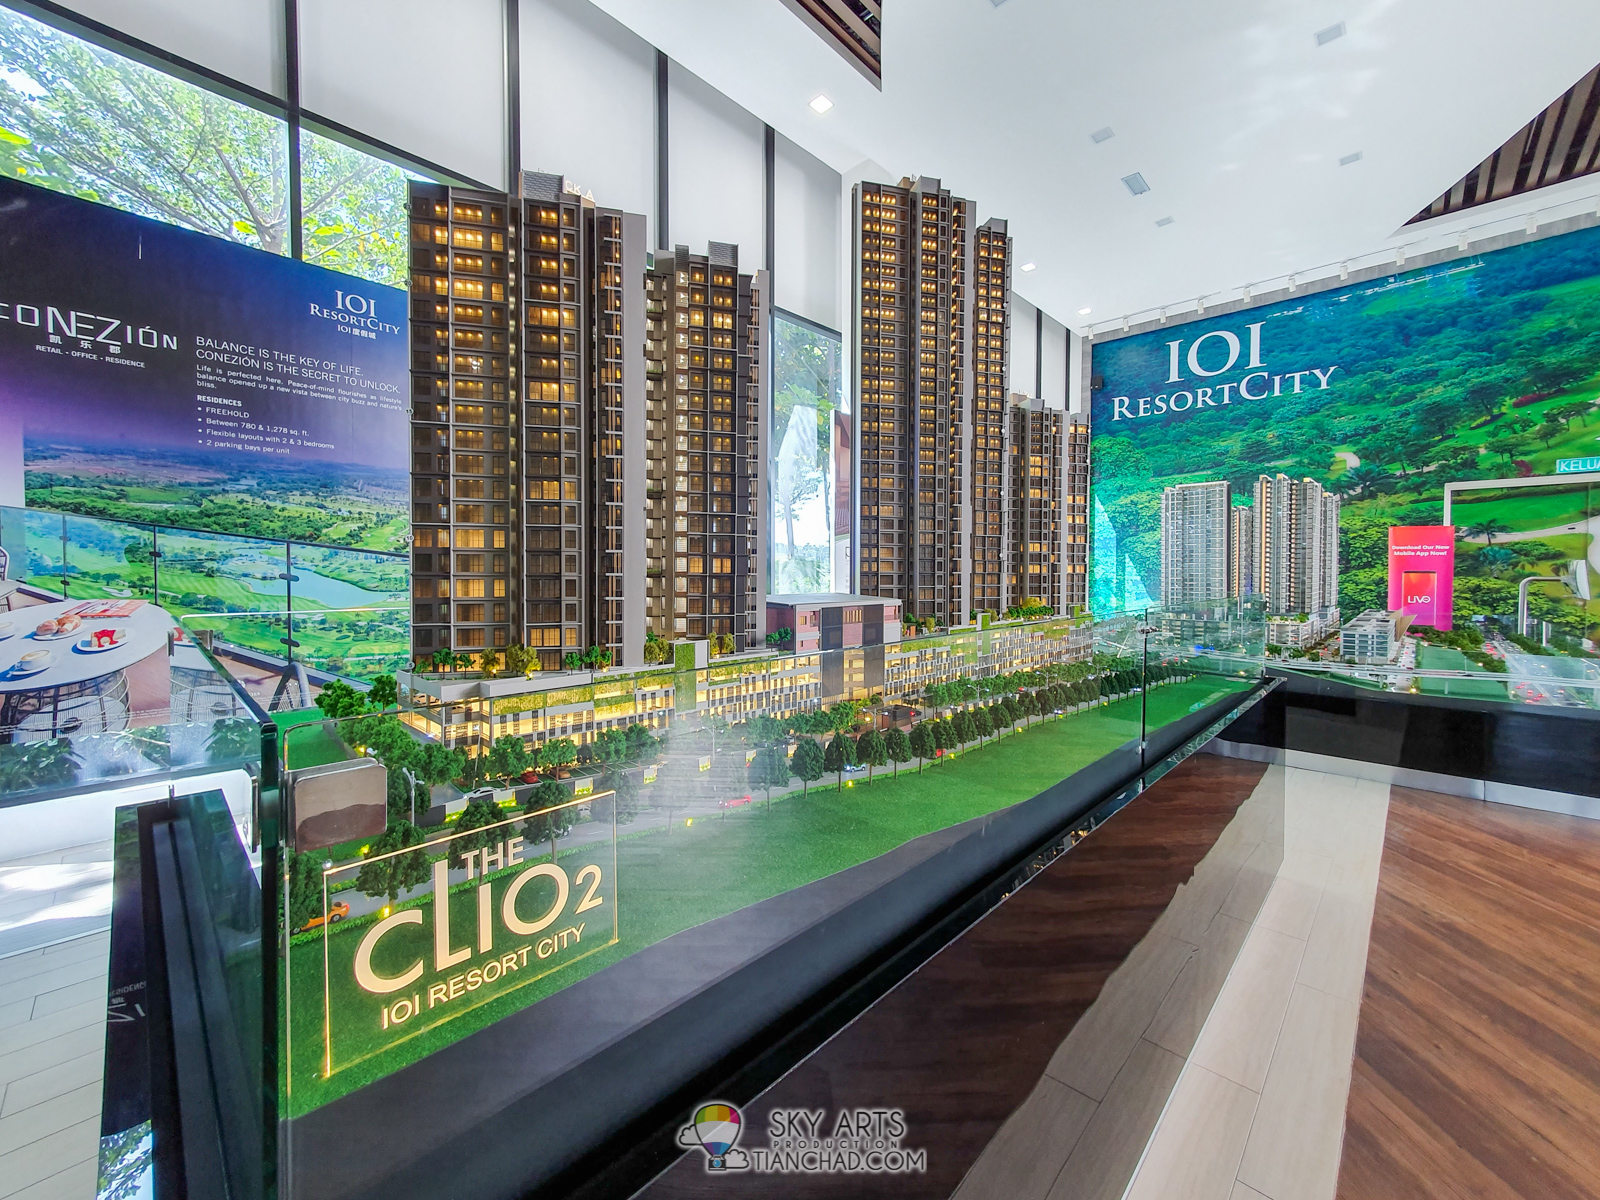 The Clio 2 Residences Ioi Resort City Should You Buy Here